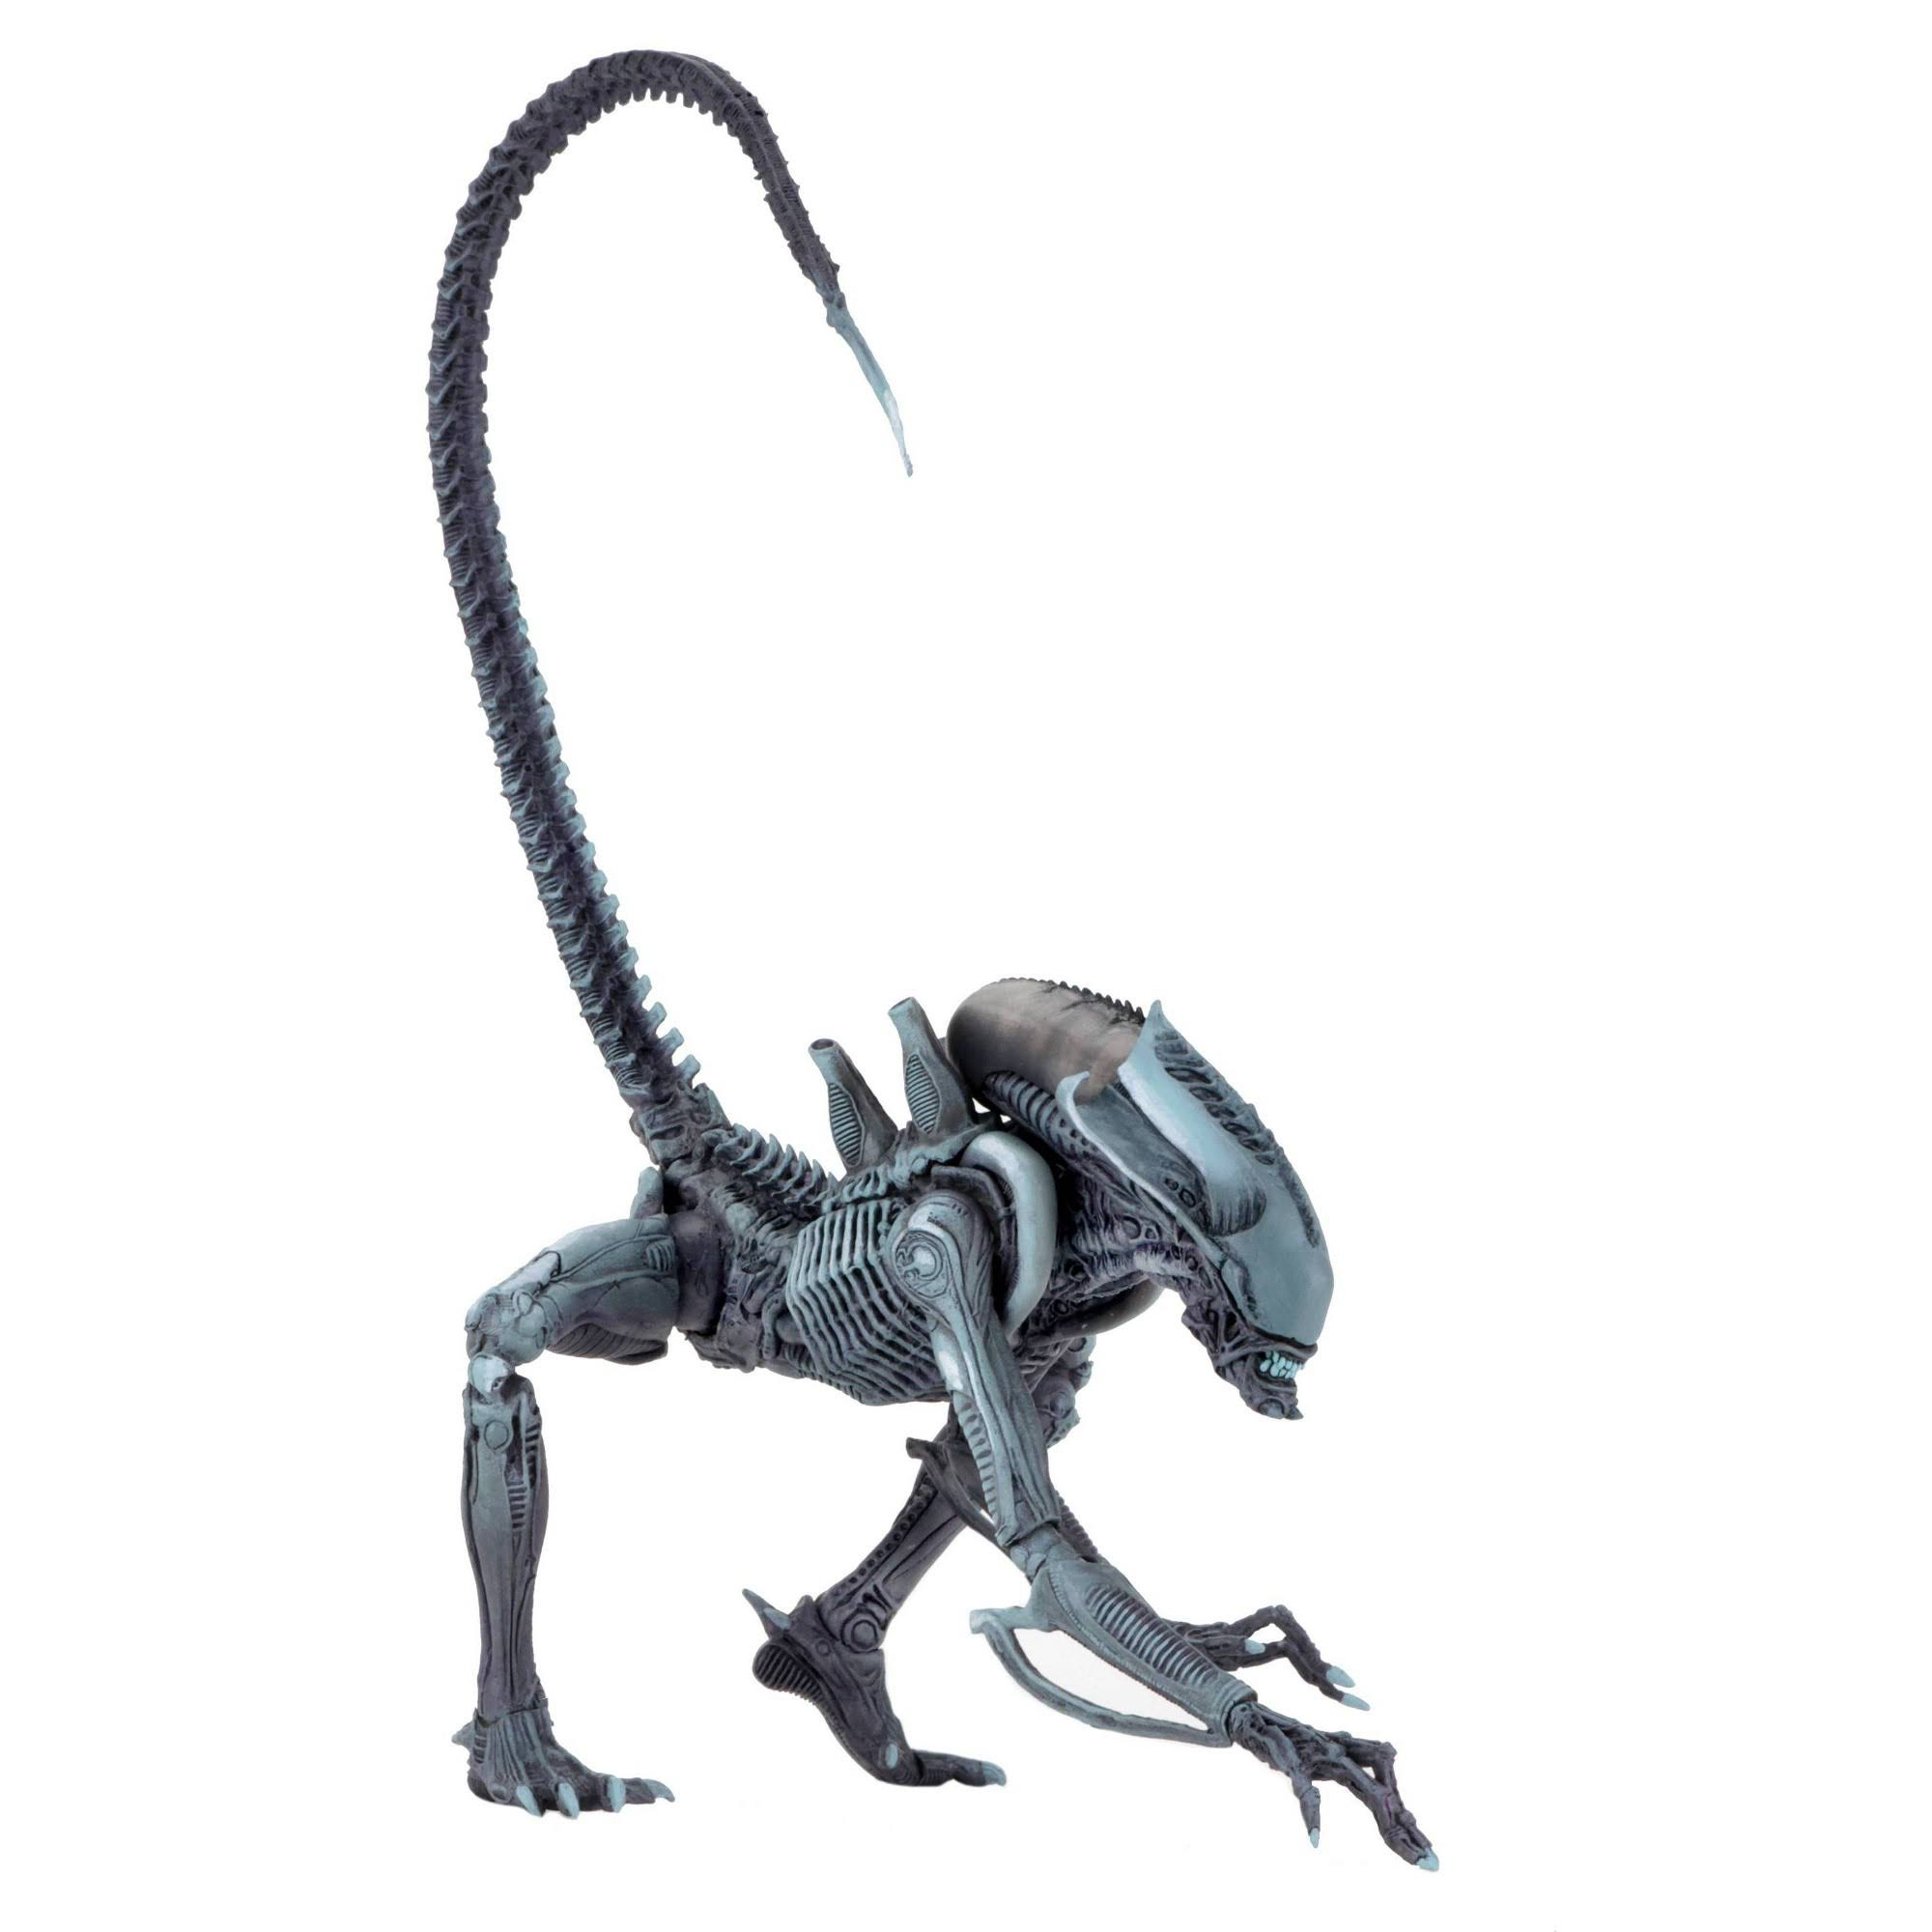 Neca Alien vs Predator Action Figure - 9""